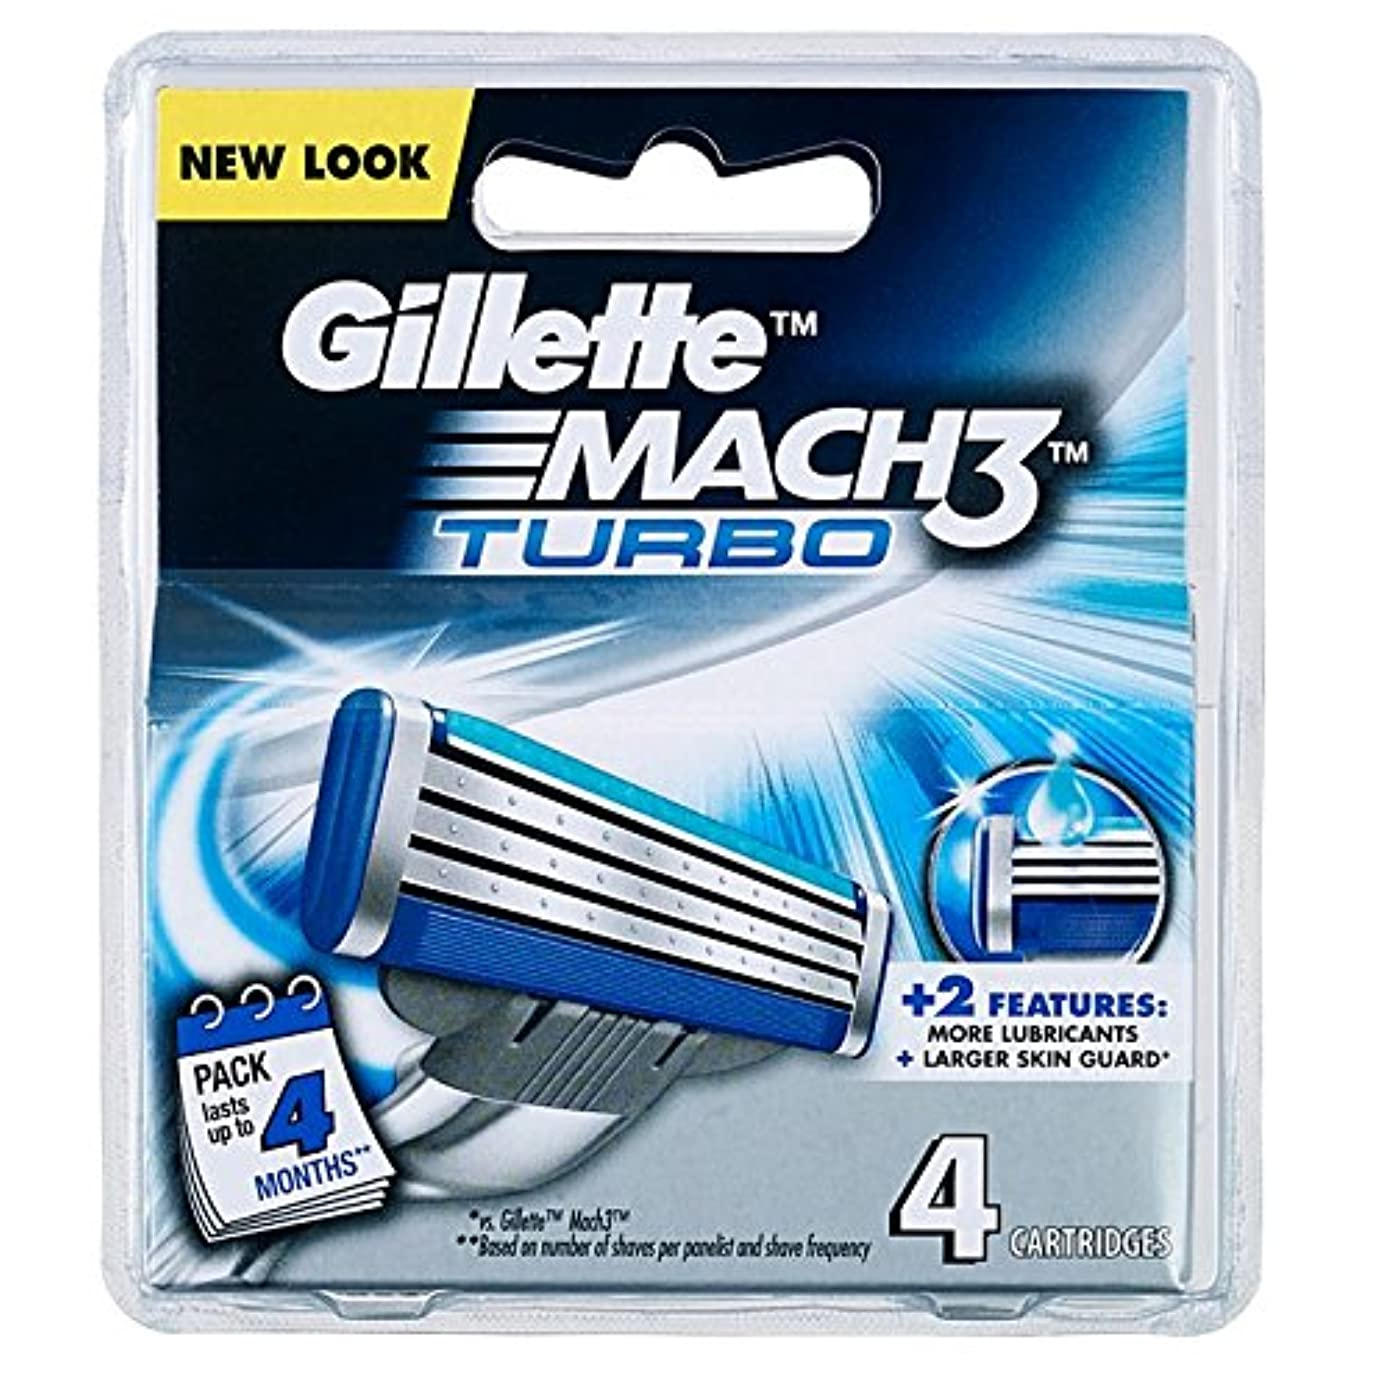 擬人化どこでも花瓶Gillette MACH3 Turbo SHAVING RAZOR CARTRIDGES BLADES 4 Pack [並行輸入品]